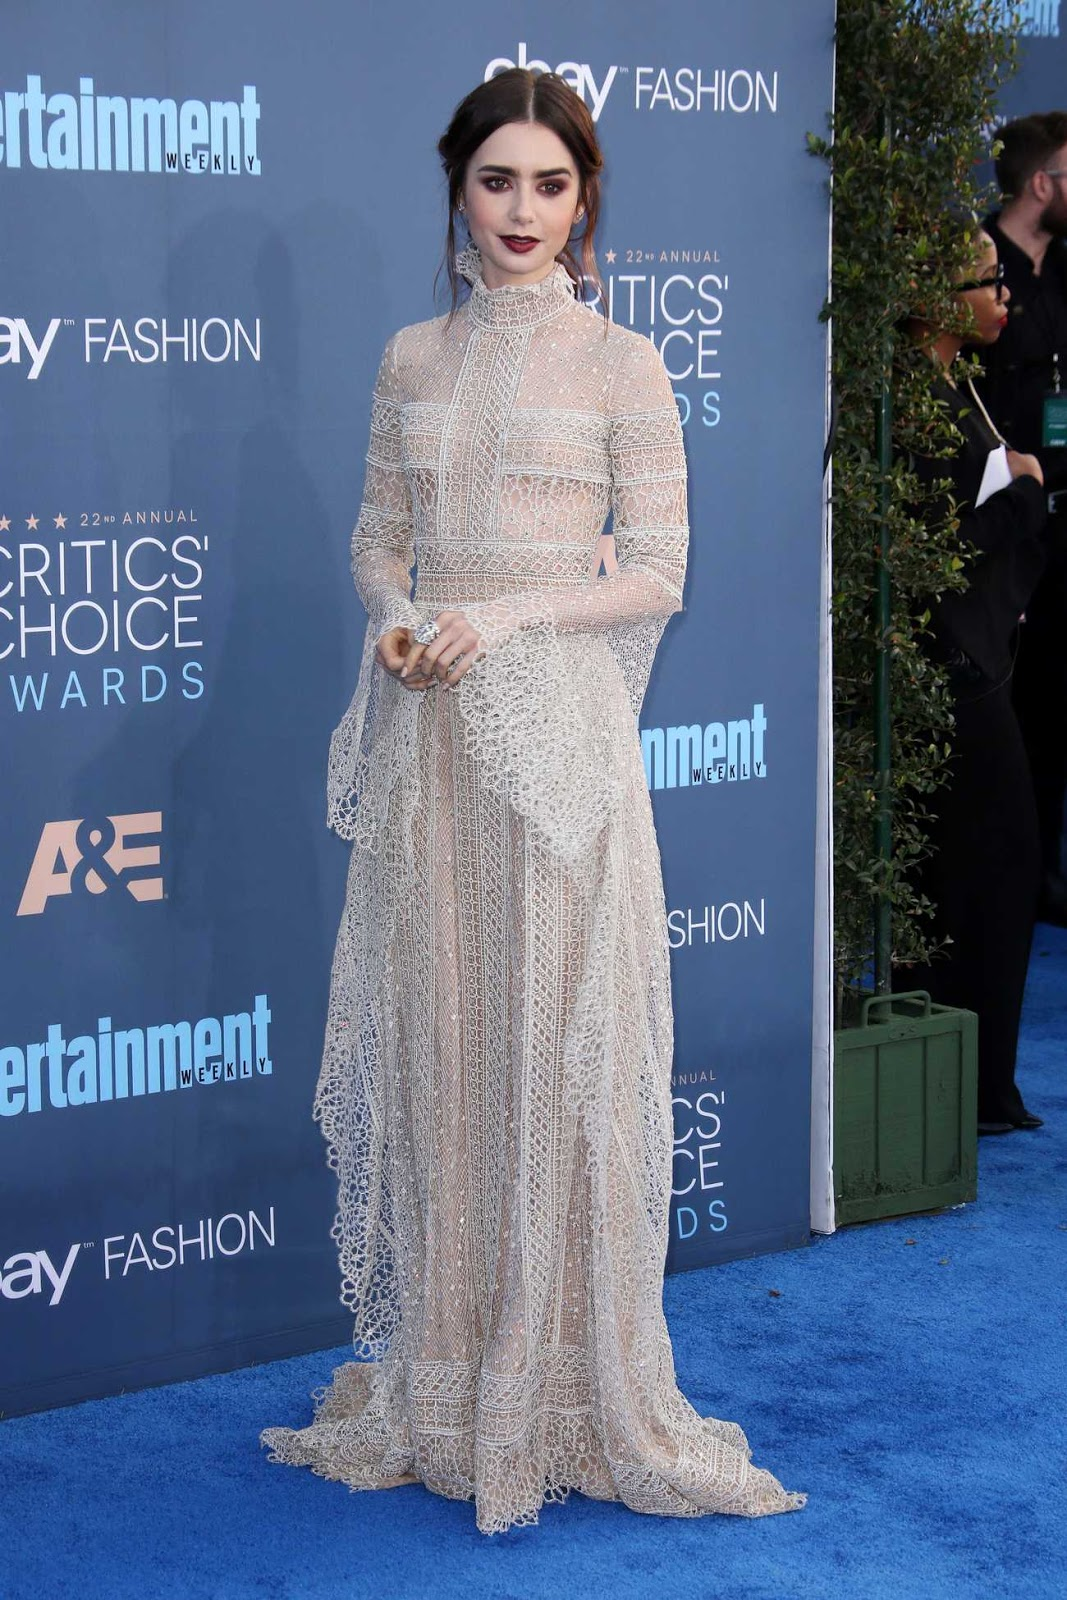 Lily Collins goes gothic chic for the 22nd Annual Critics' Choice Awards